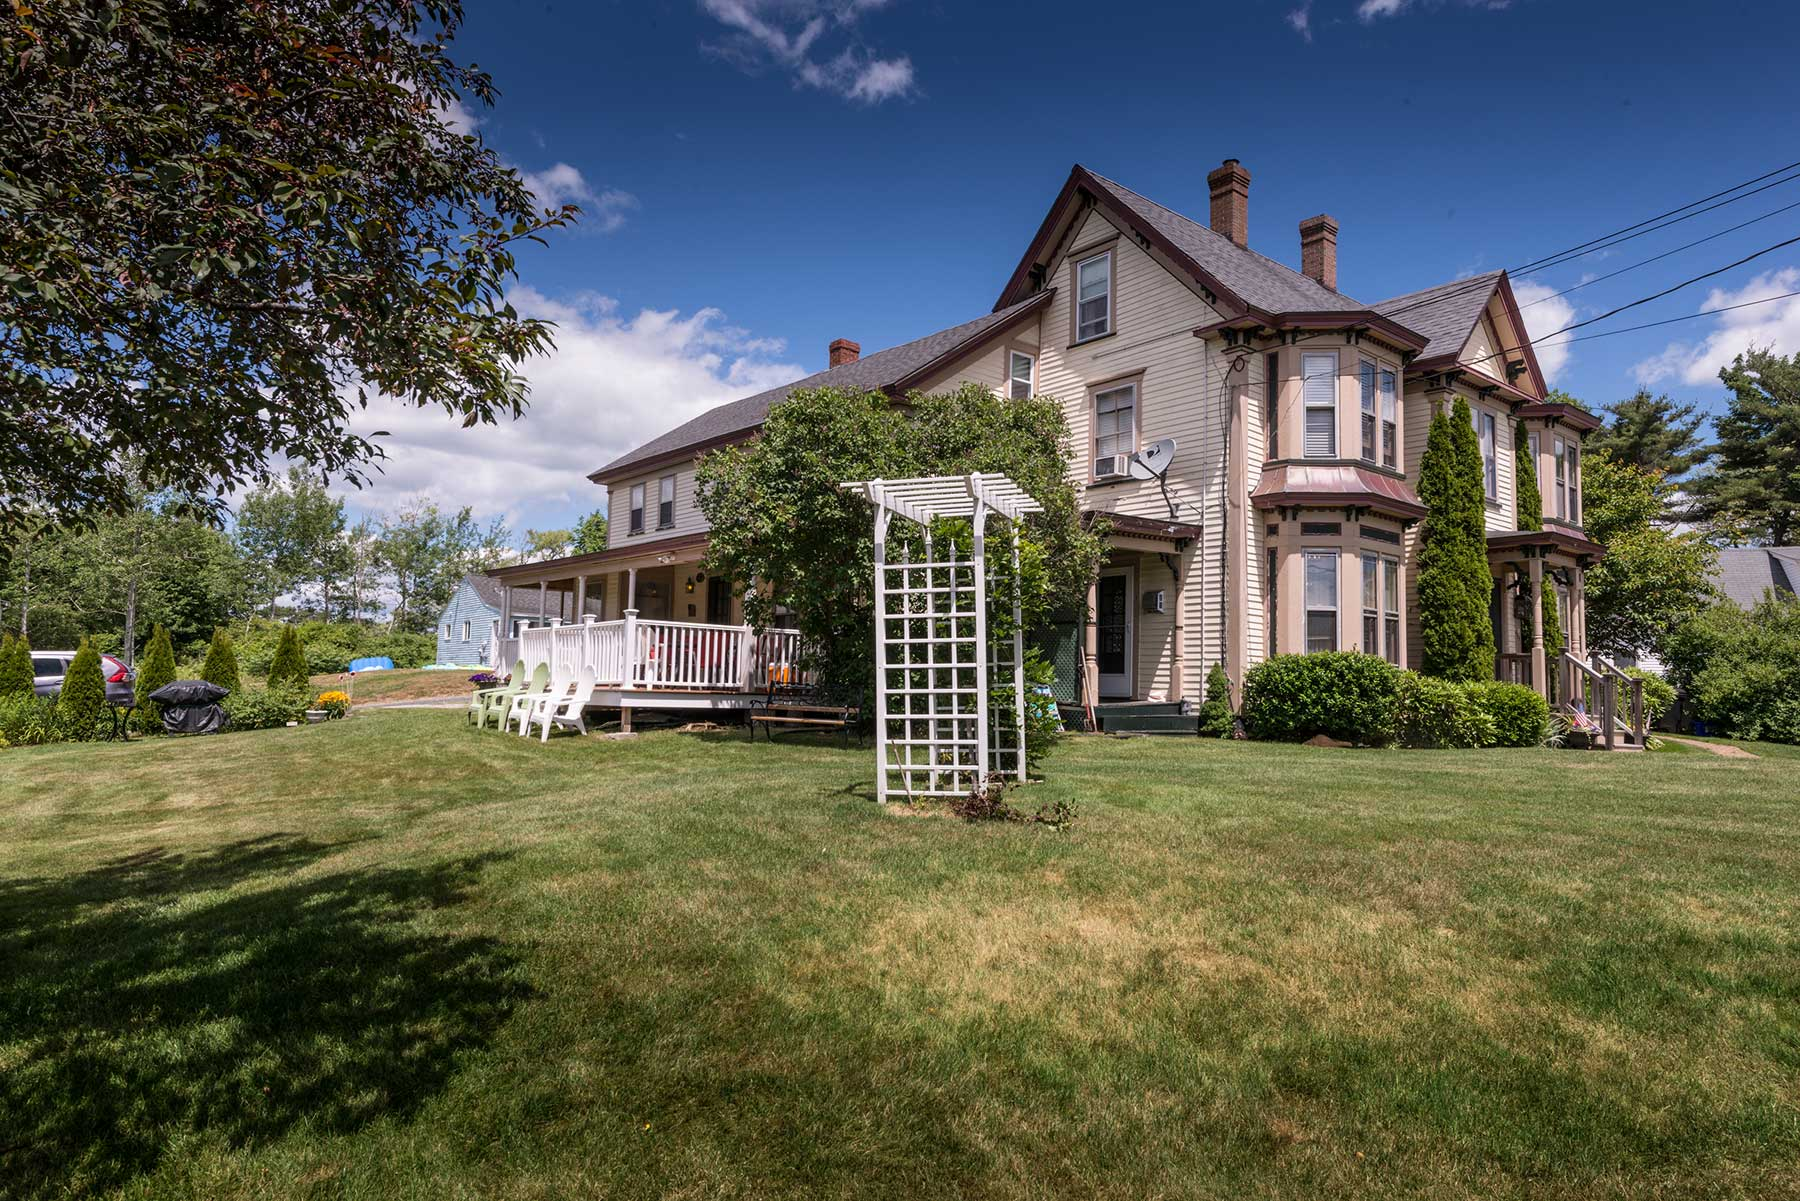 Single Family Home for Sale at Two Family Residence near York Beaches 444 Ridge Road York, Maine, 03909 United States